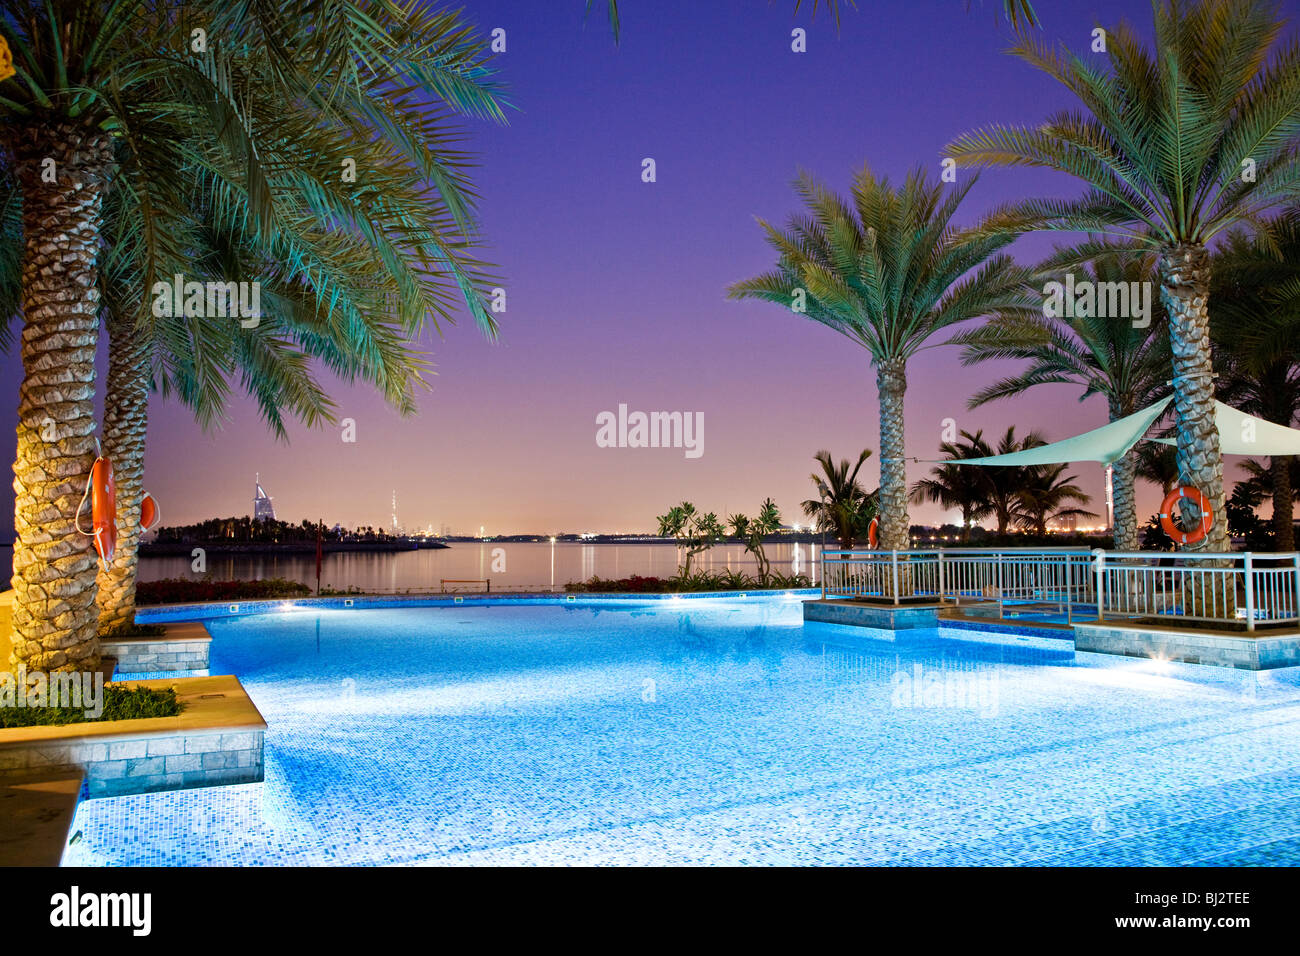 Swimming Pool Of A Beach Club On Palm Island Jumeirah In Dubai With Stock Photo Royalty Free